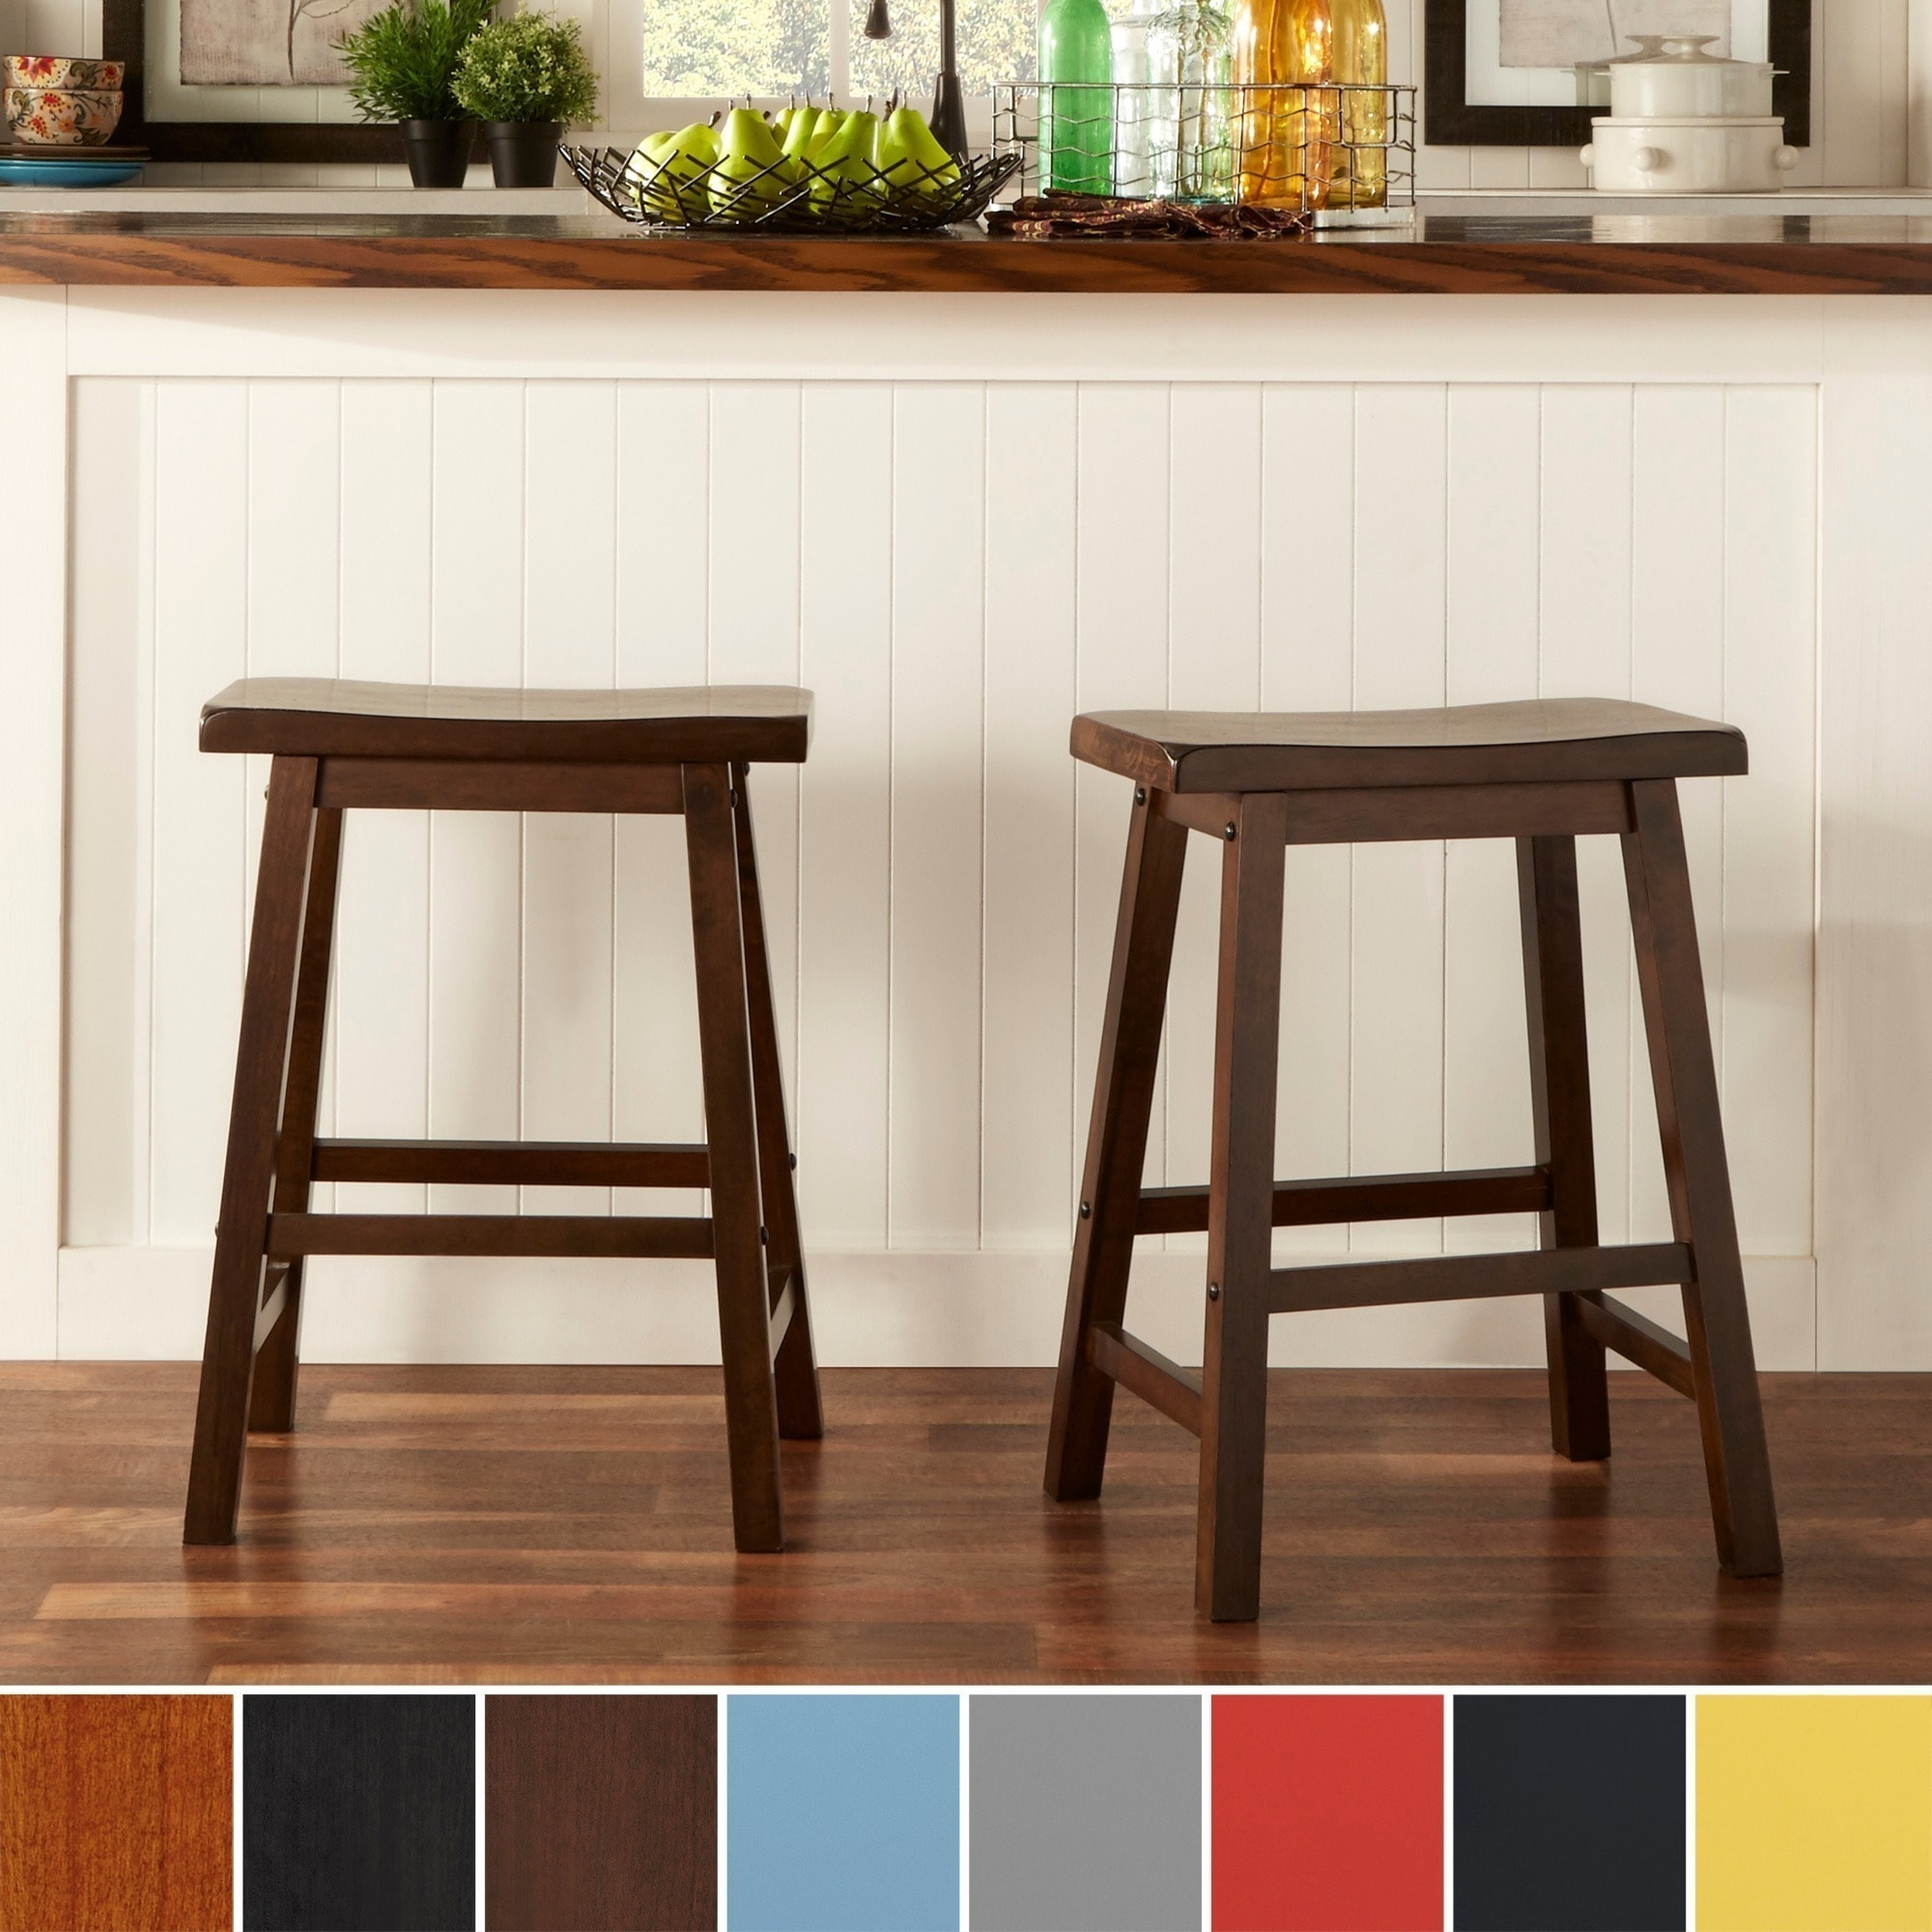 Salvador Saddle Back 24-inch Counter Height Backless Stool (Set of 2) by  iNSPIRE Q Bold - Free Shipping Today - Overstock.com - 12960331